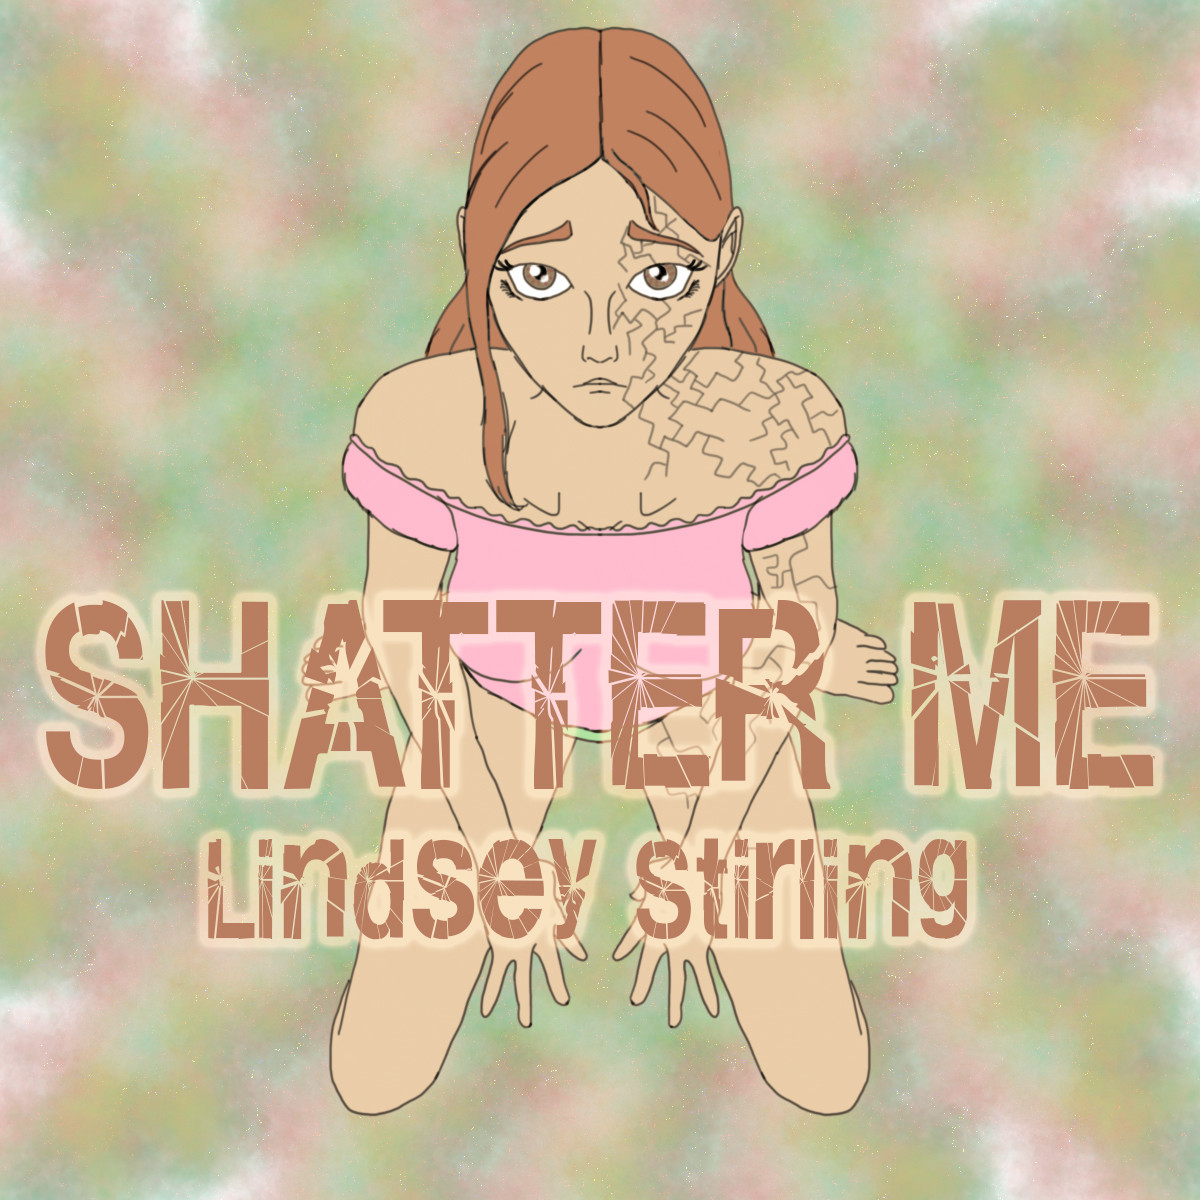 Album Cover Redraw Album: 'Shatter Me' by Lindsey Stirling